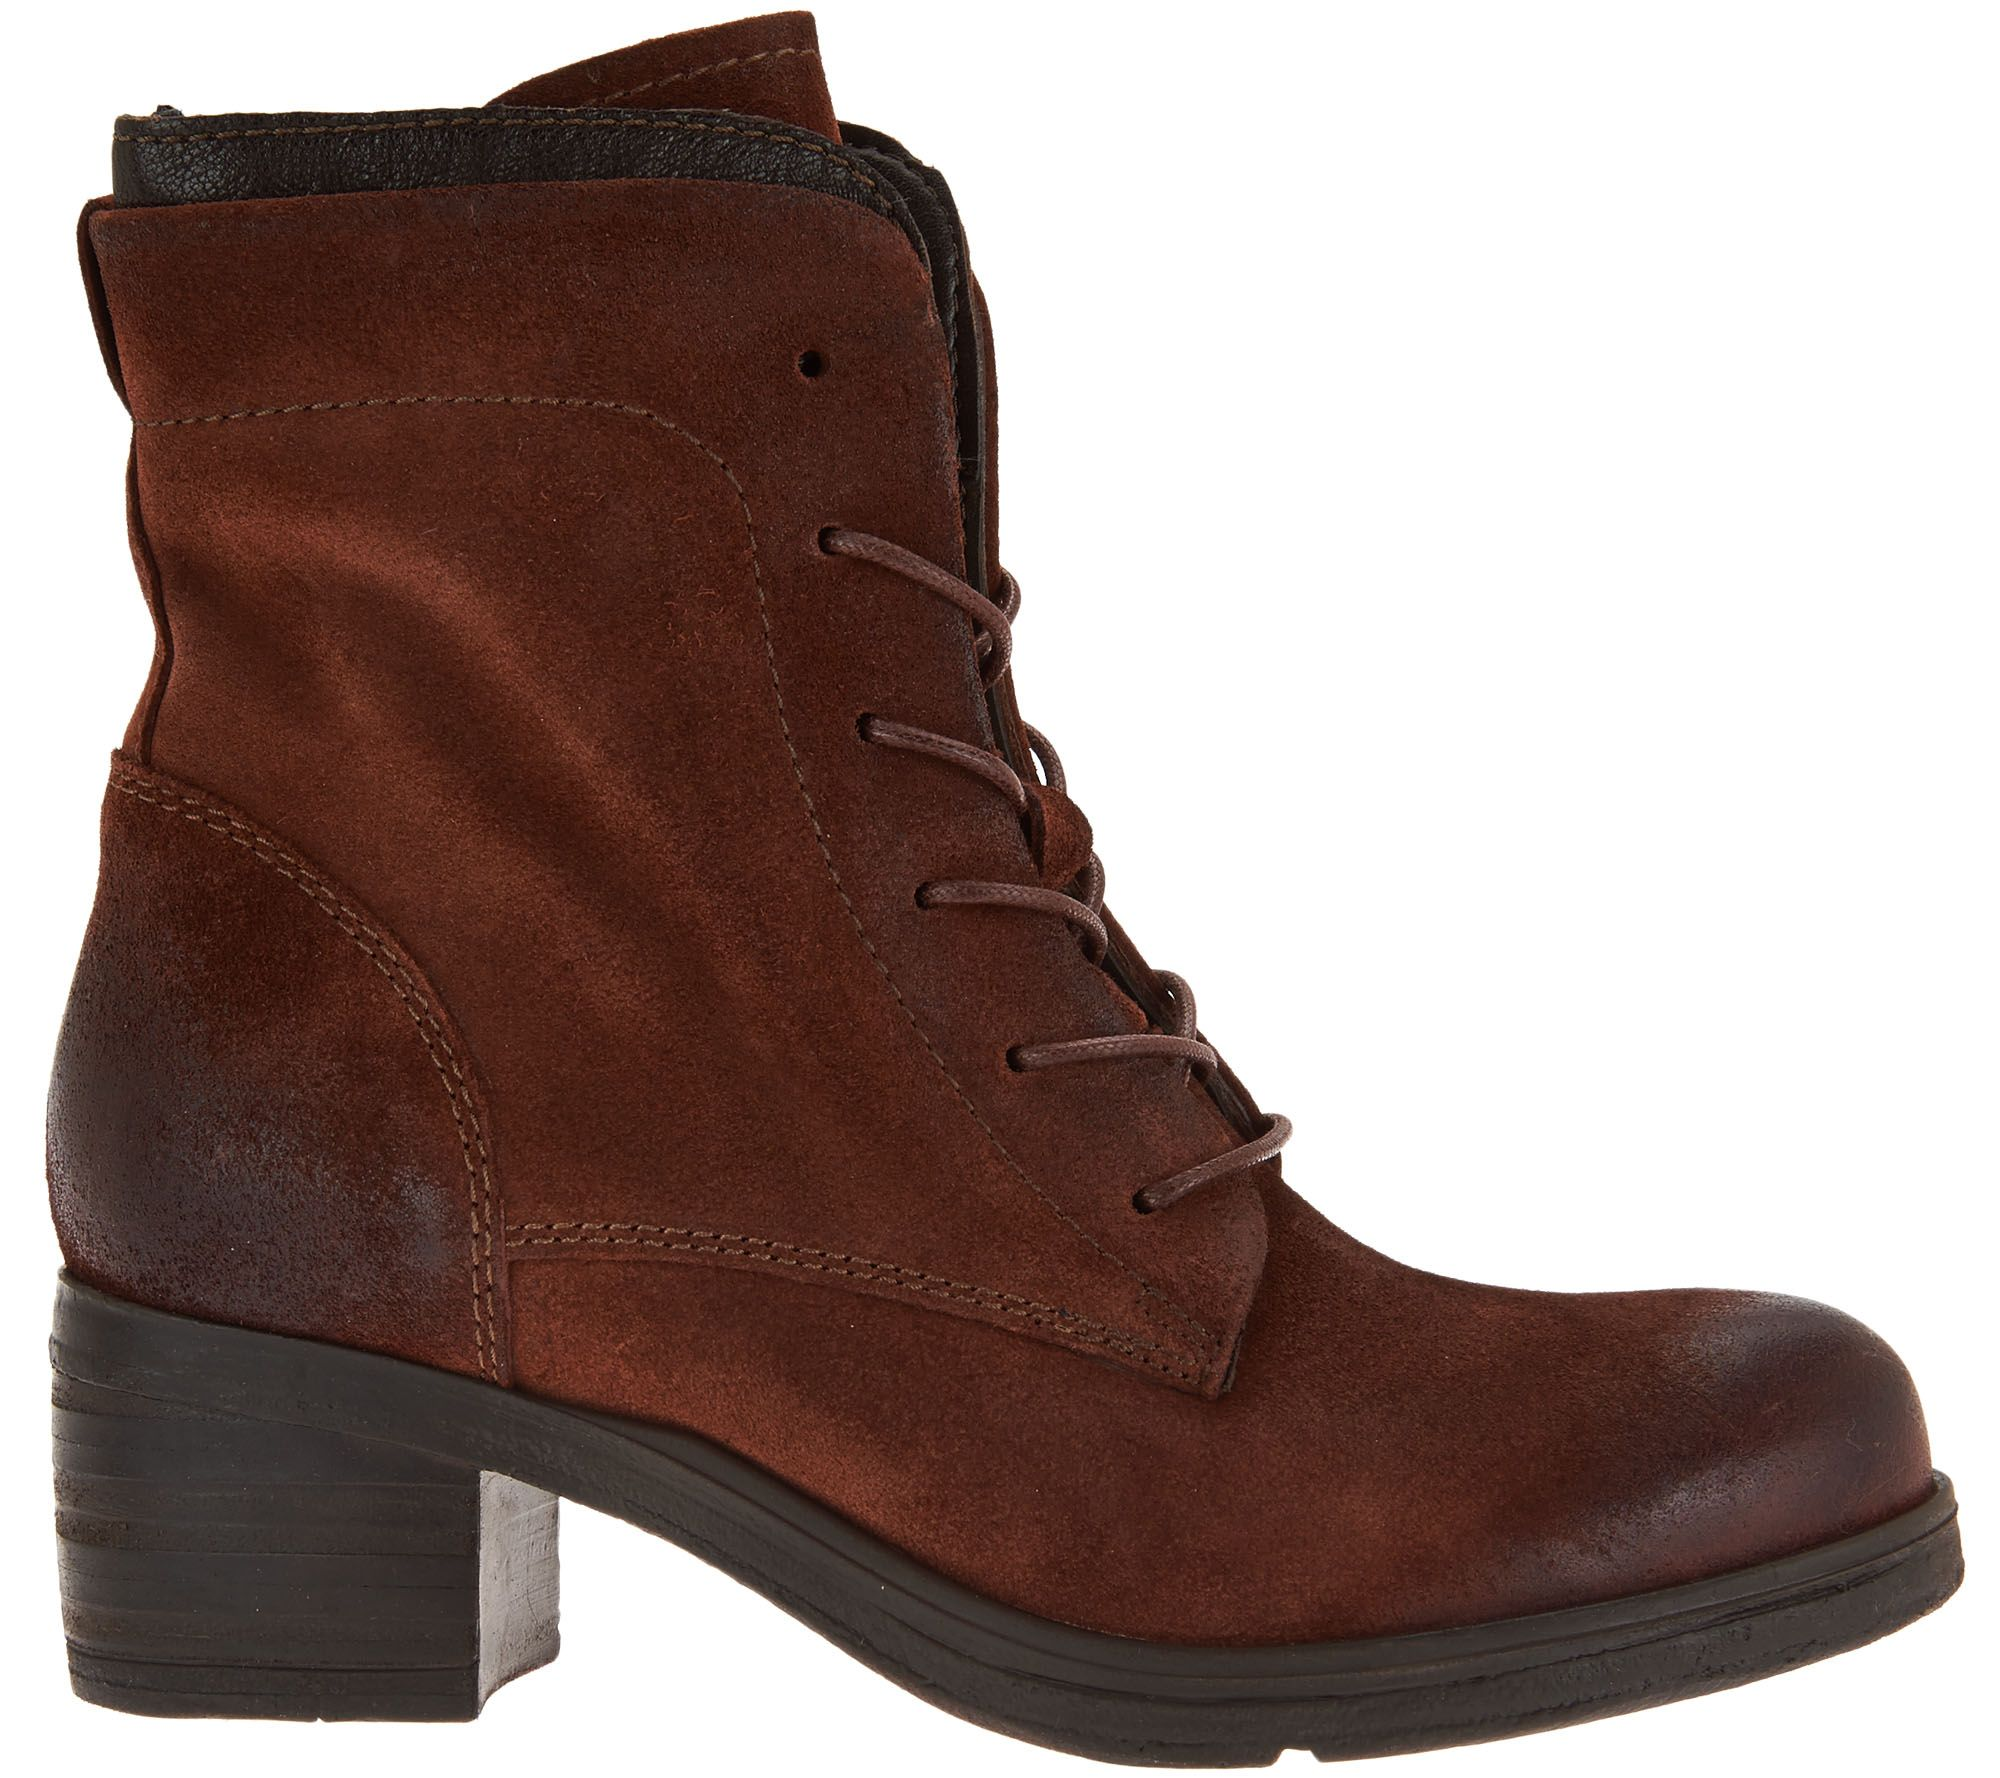 Miz Mooz Leather Lace-up Boots - Sloanne classic cheap online cheap in China buy cheap 2014 outlet best seller buy cheap visit JQzmd